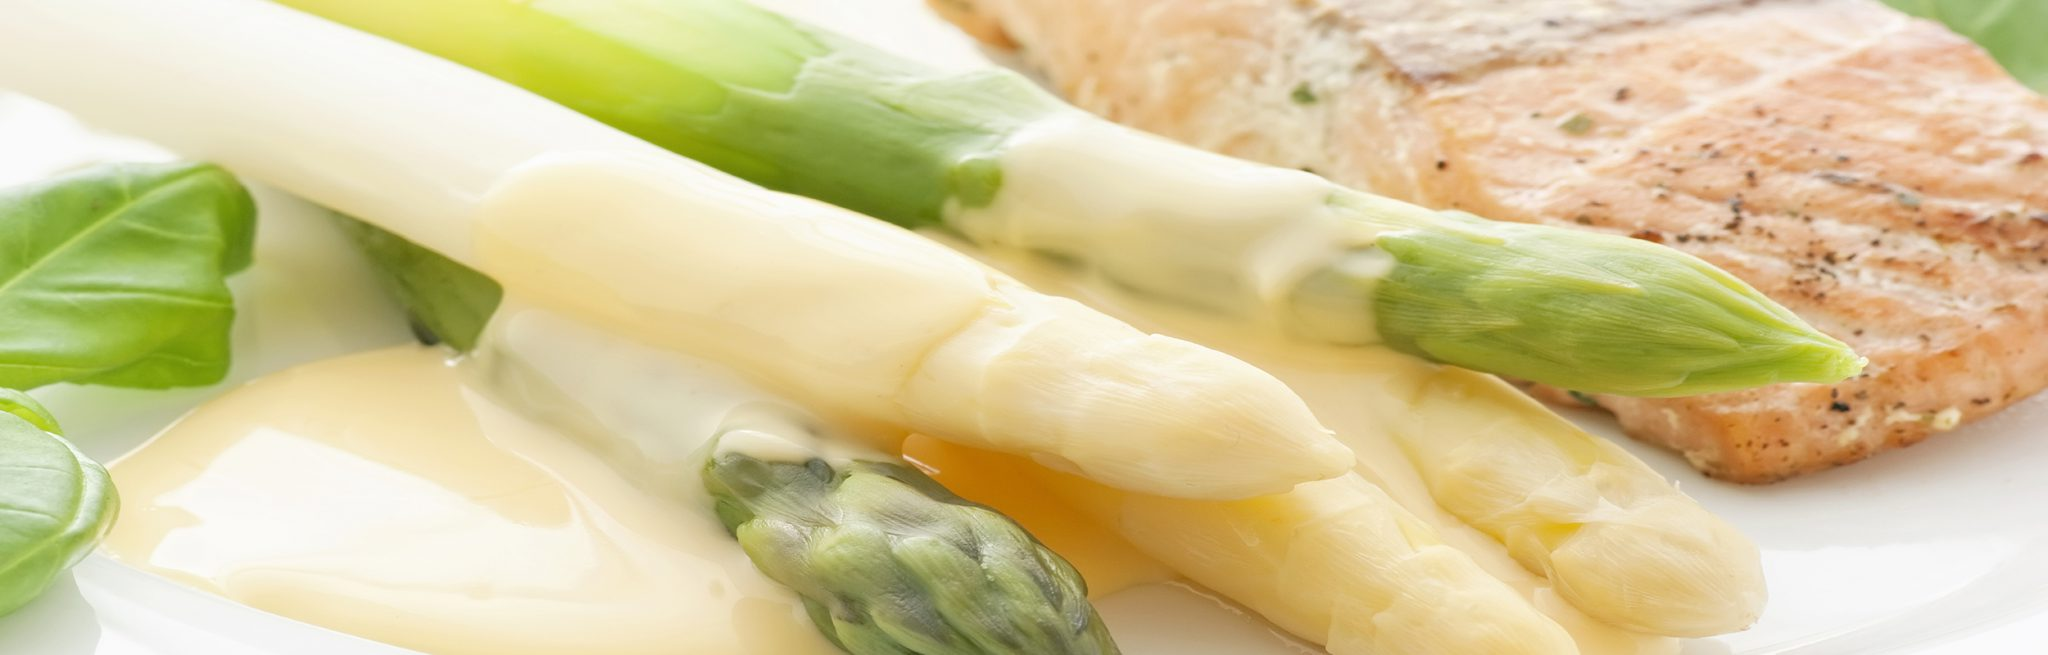 Asperges Suggesties